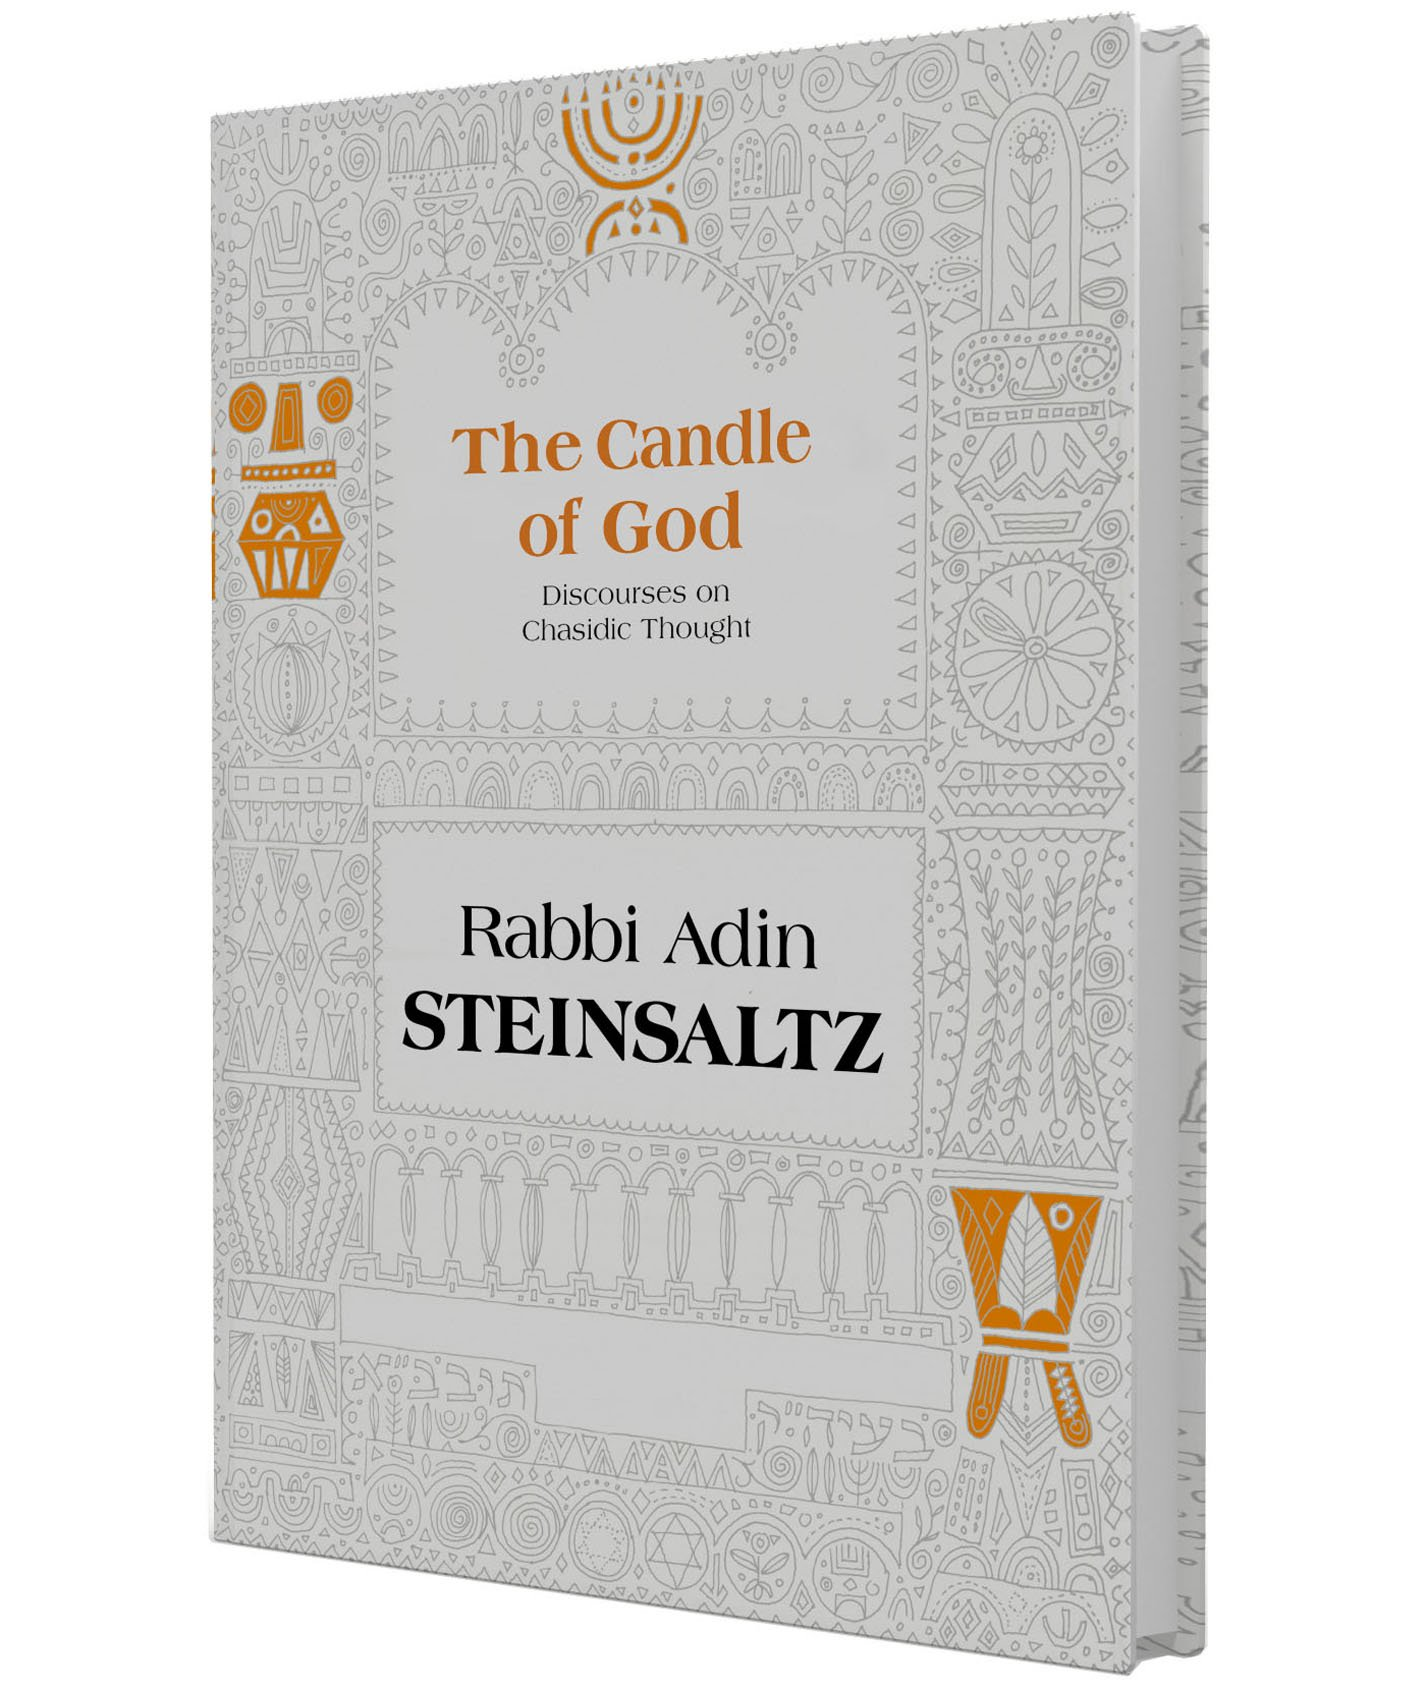 The Candle of God: Discourses on Hasidic Thought